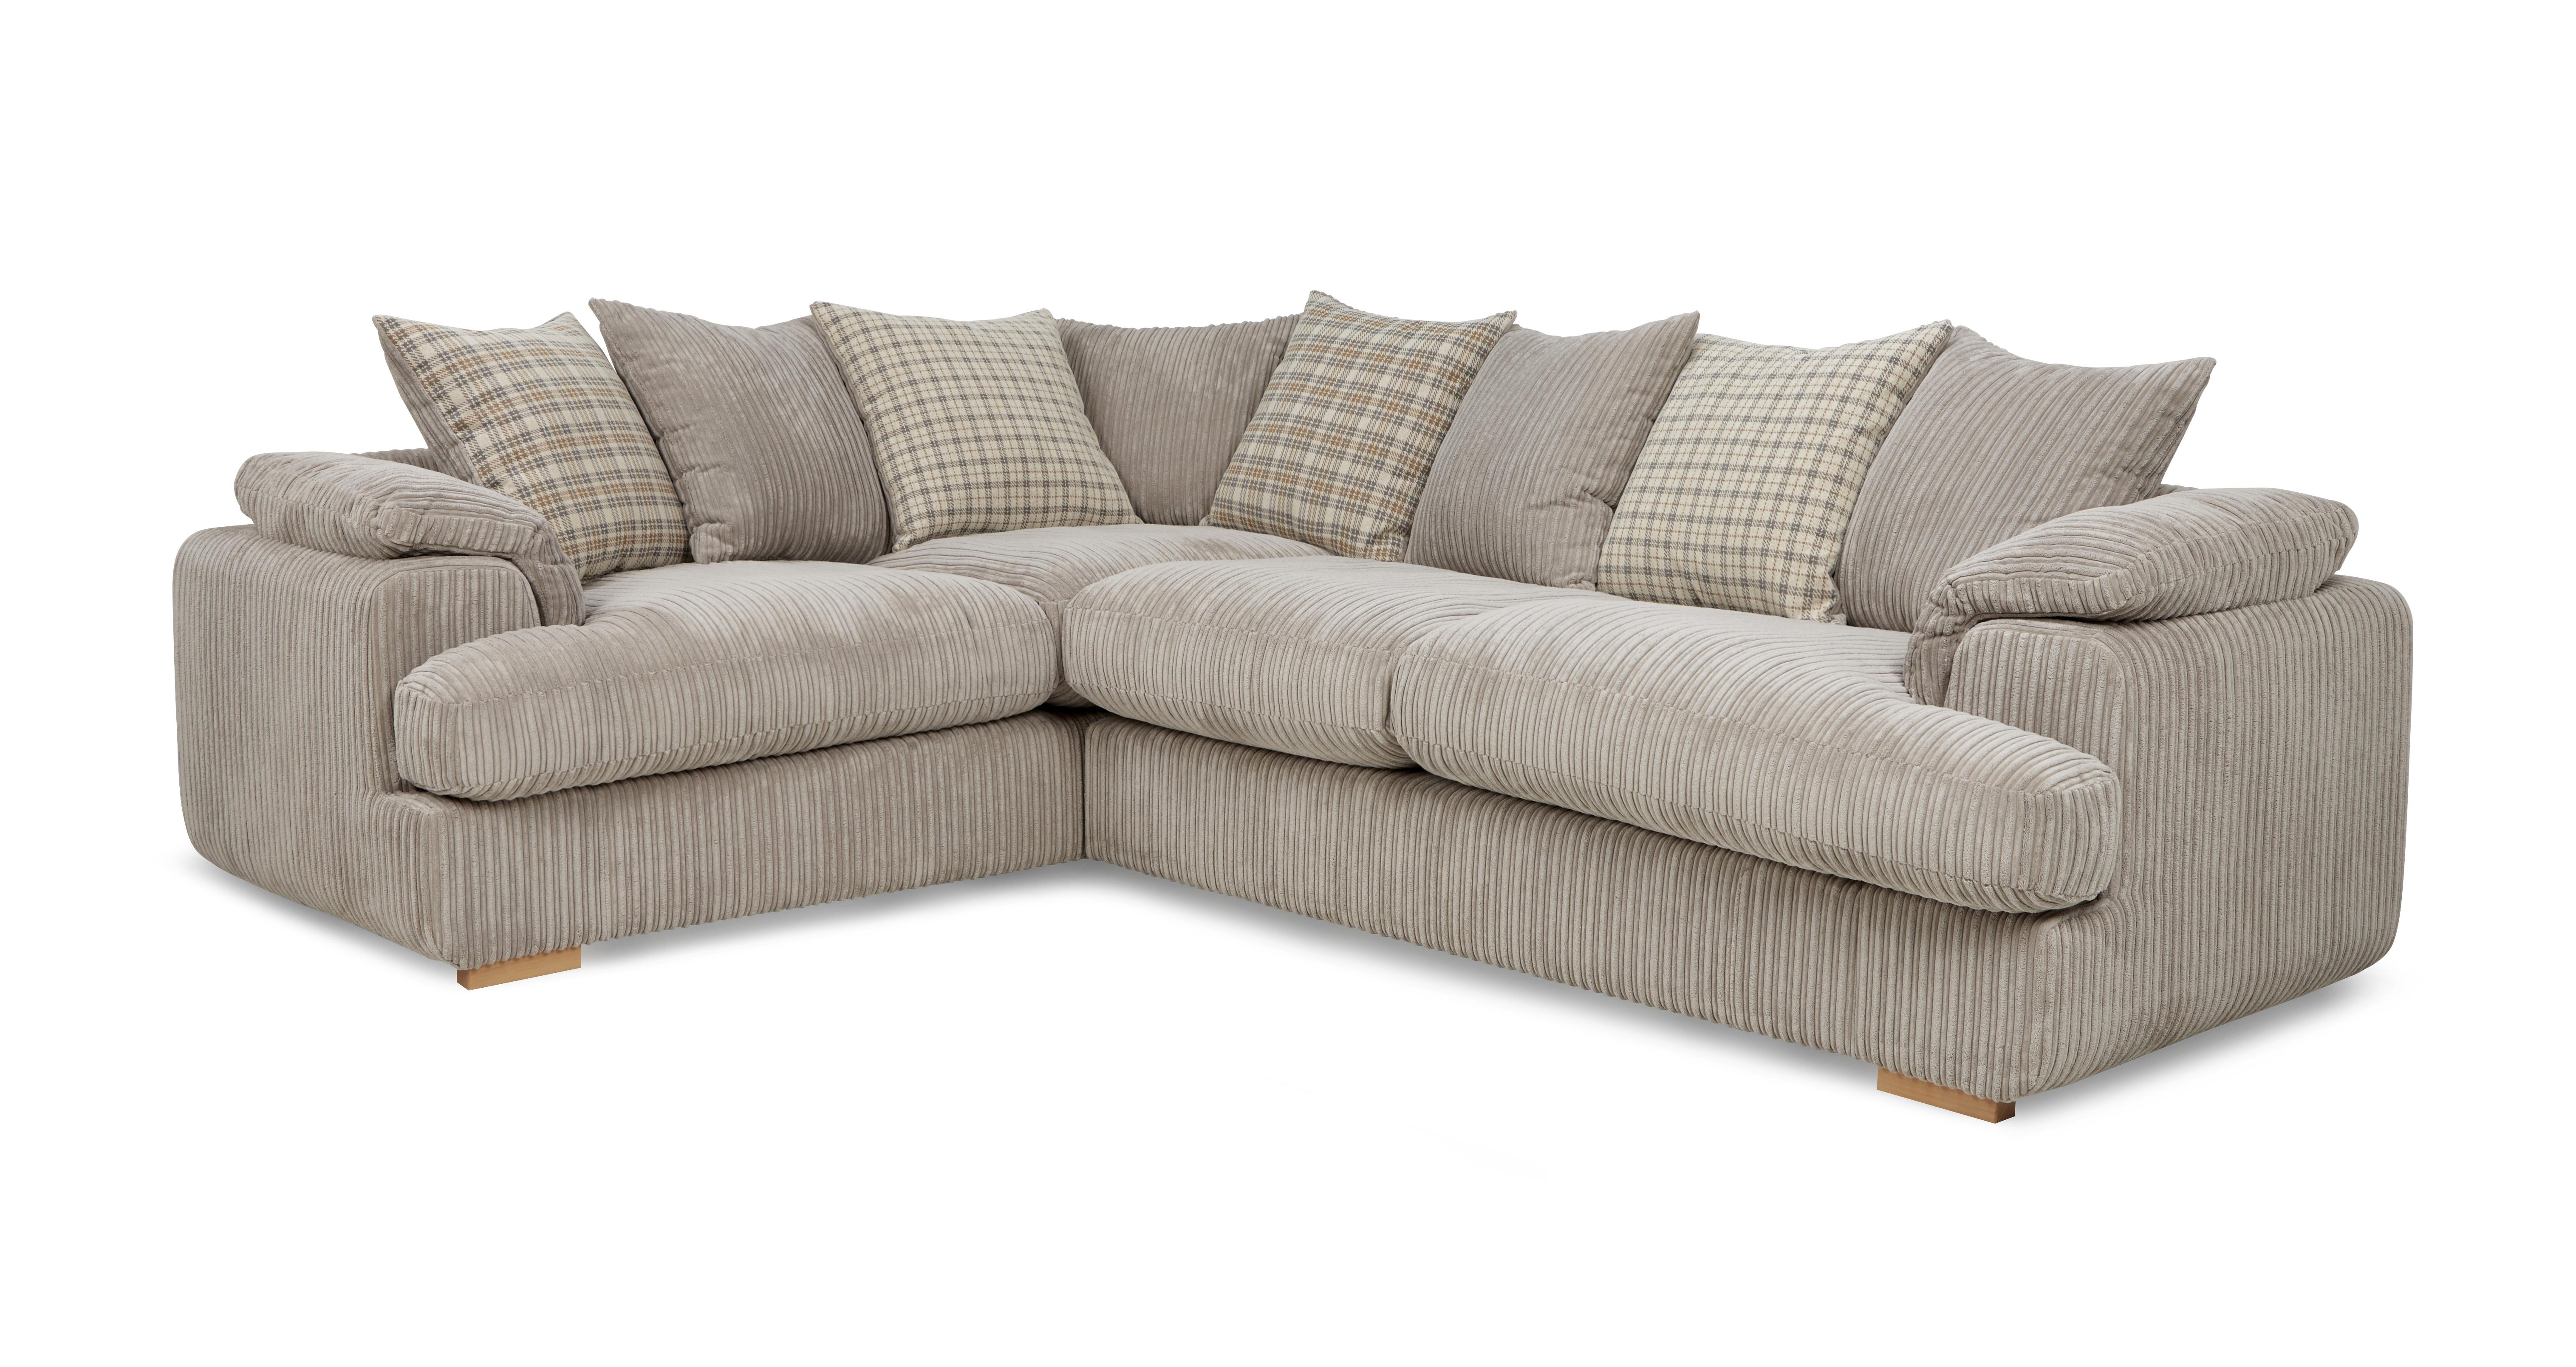 corner sofa dfs martinez bettsofa mobel pfister celine right arm facing 2 seater pillow back